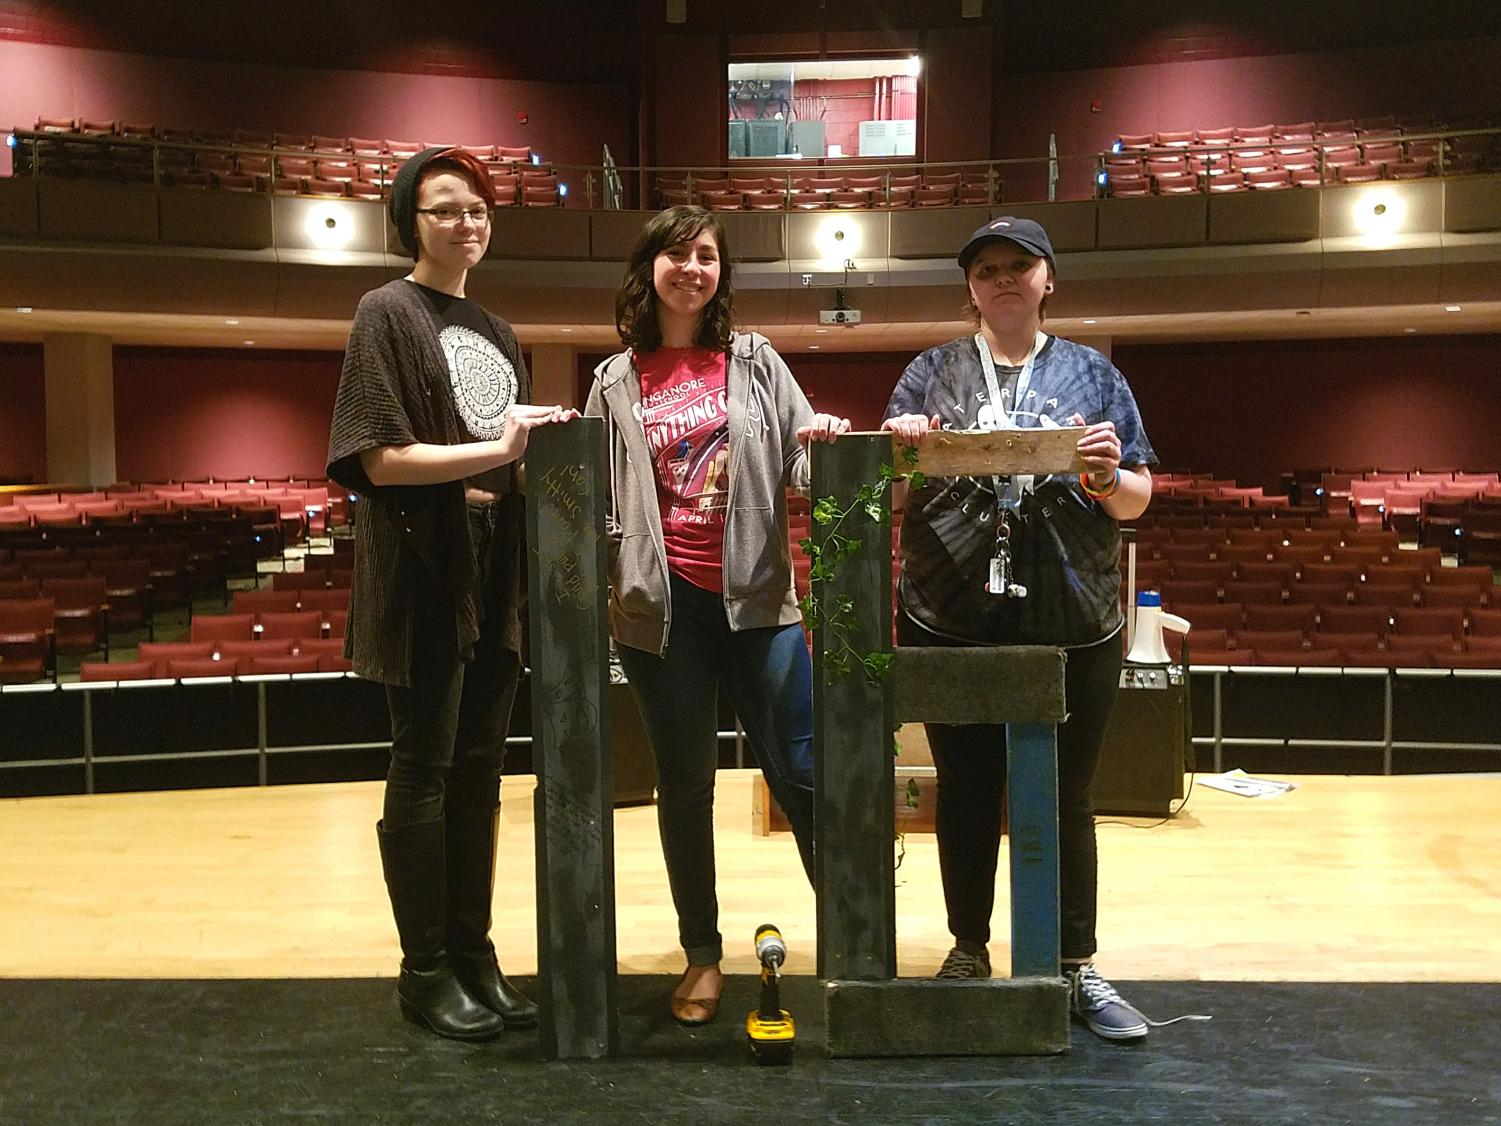 Techie seniors (from left to right: Abby Maloid, Rozmia Fattah, and Shayden Jamison) pose on stage for day 16 of the countdown